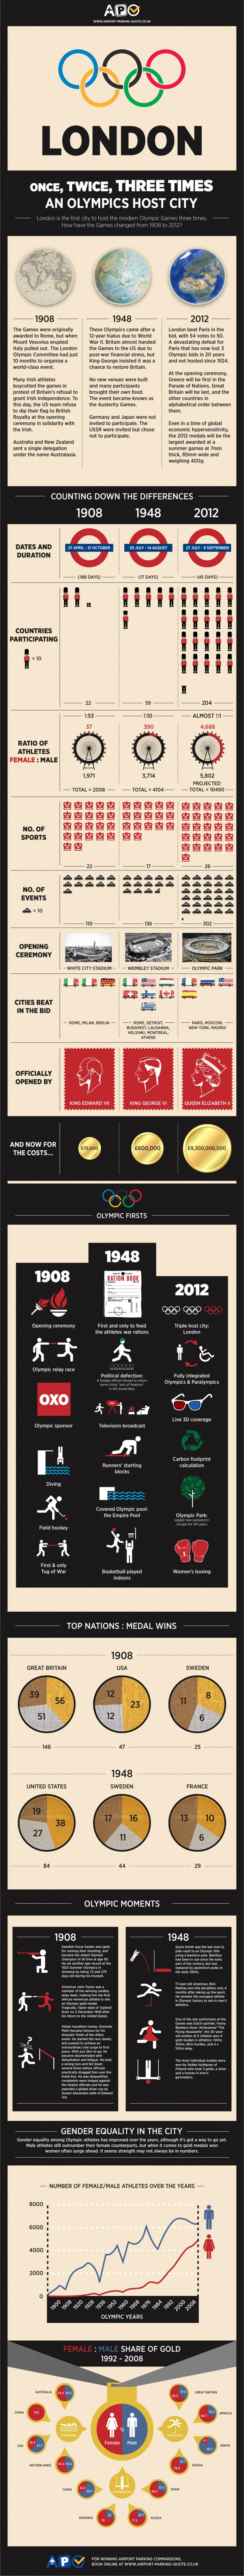 6. London Olympics Info graphic